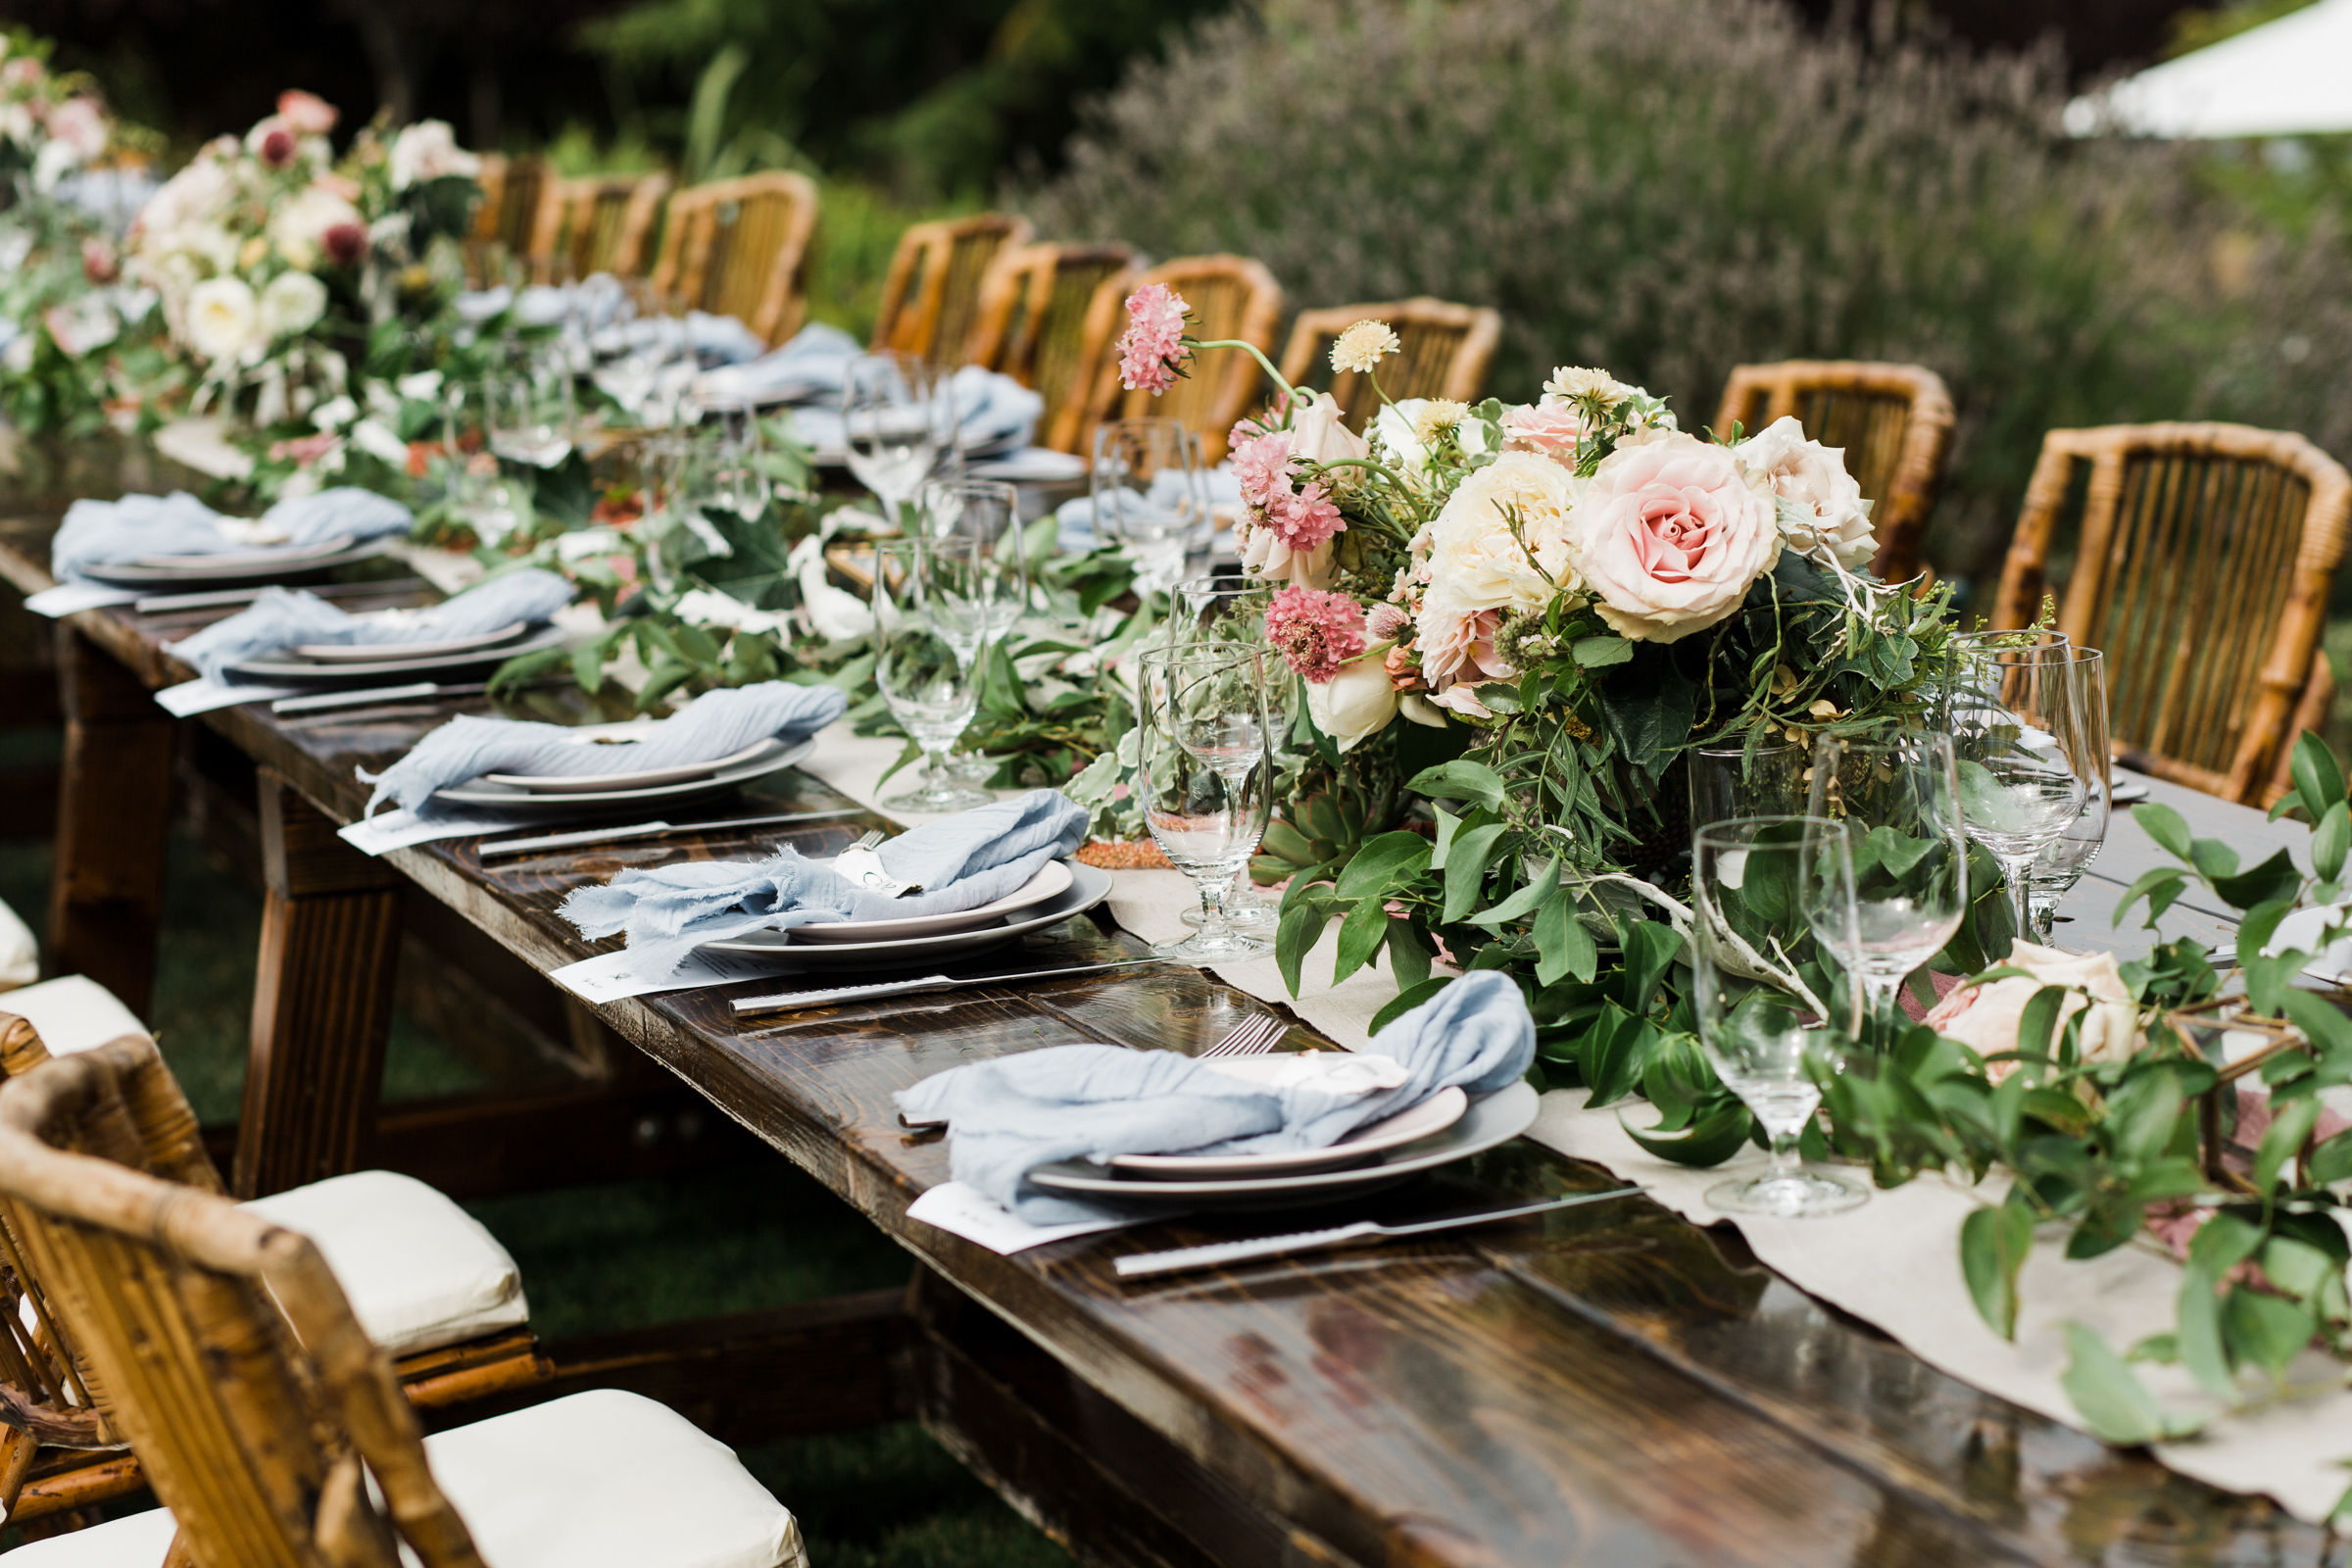 Wooden reception table with rustic cane chairs - photo by Stephanie Cristalli Photography